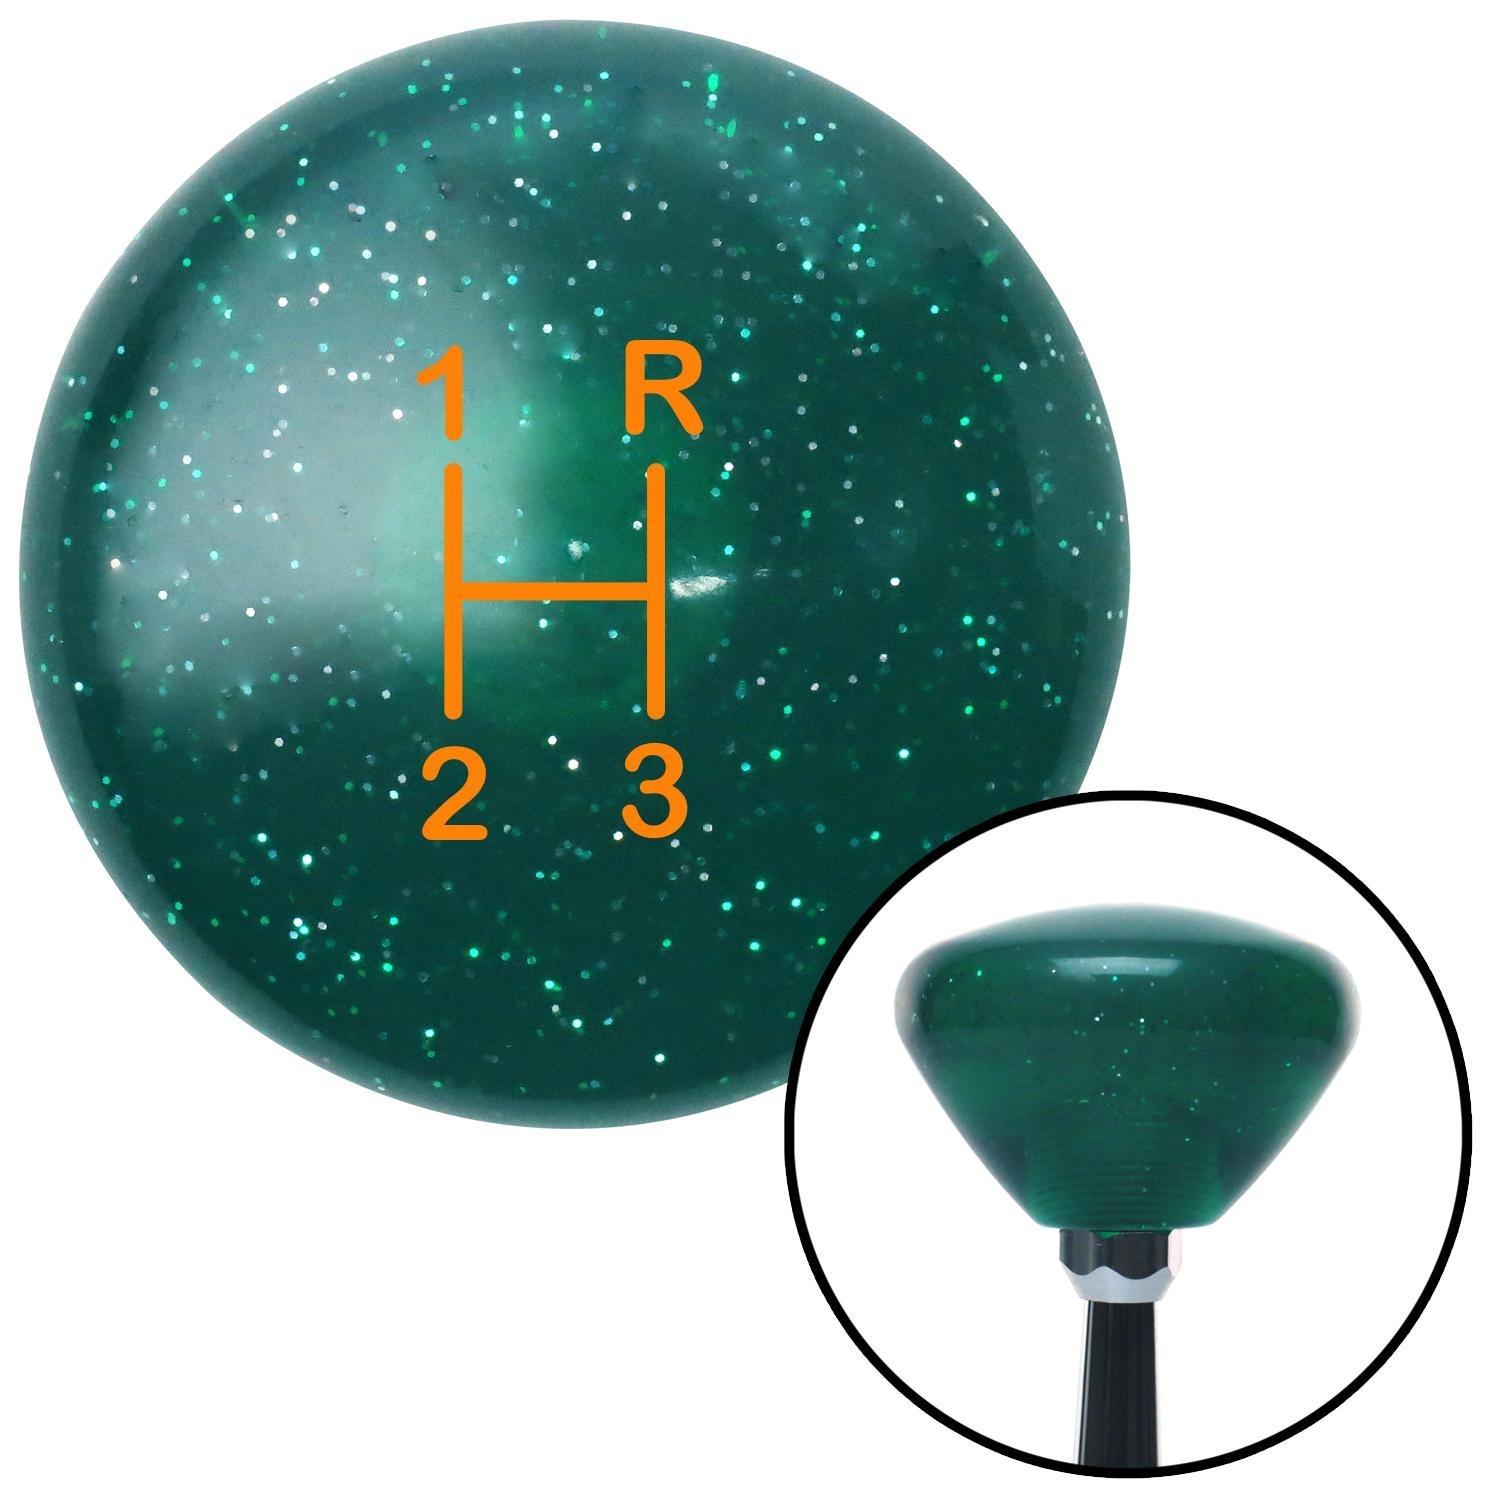 Orange Shift Pattern 10n American Shifter 208406 Green Retro Metal Flake Shift Knob with M16 x 1.5 Insert